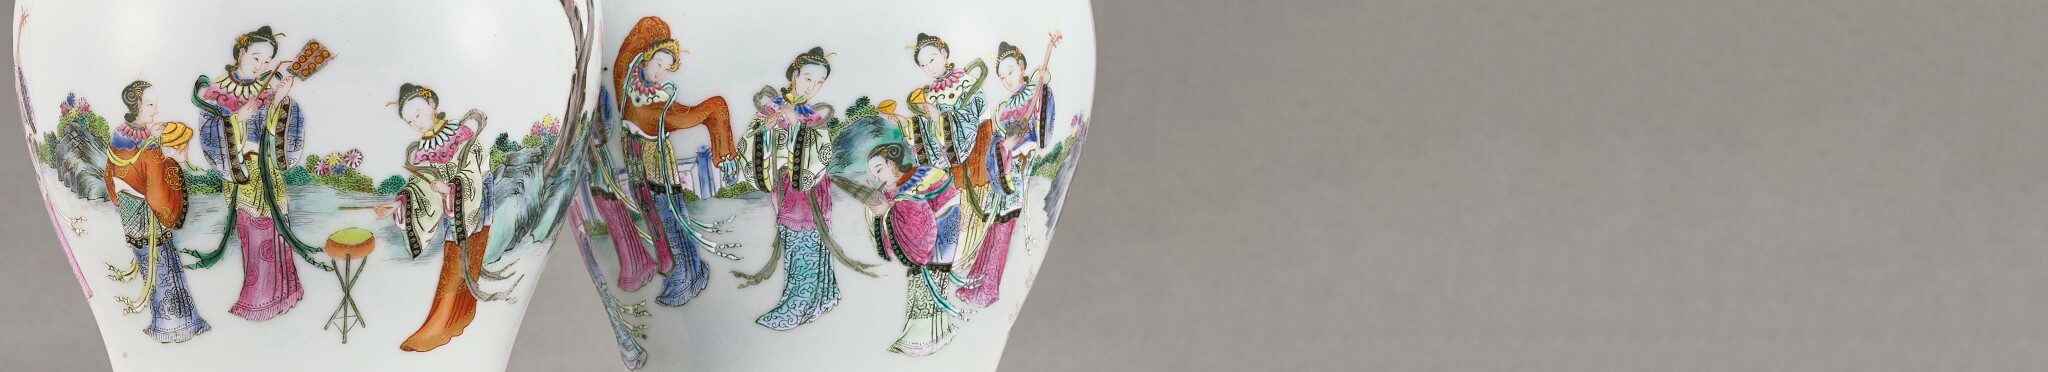 A Selection of Qing Imperial Porcelain 錦簇滿庭:清代御瓷選粹